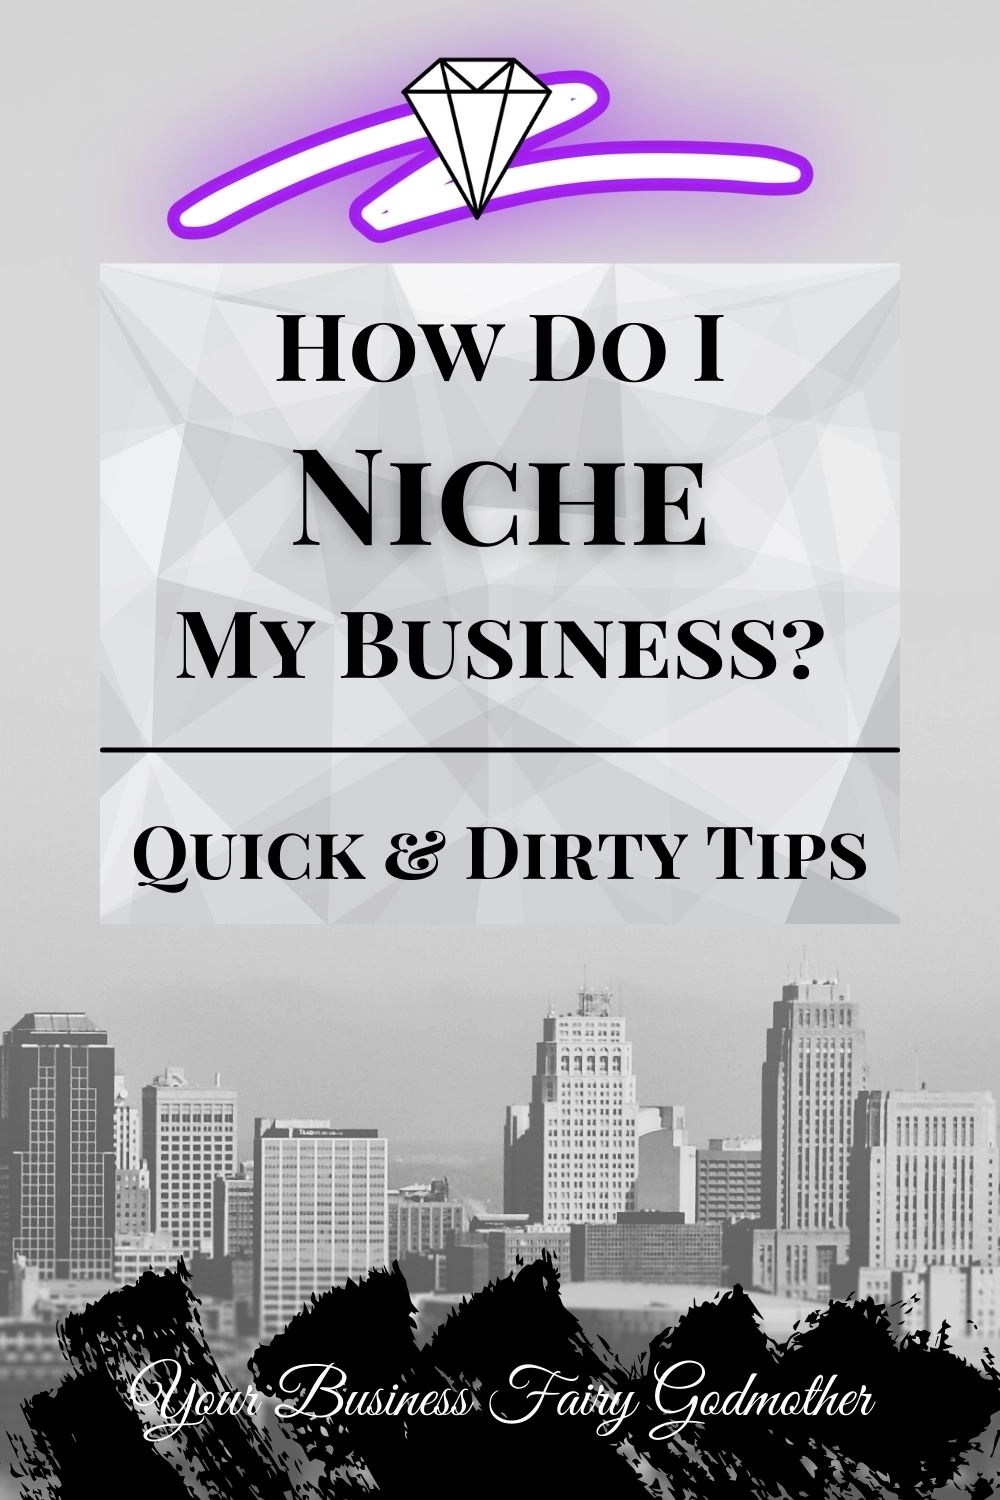 How do I niche my business? Quick and dirty tips